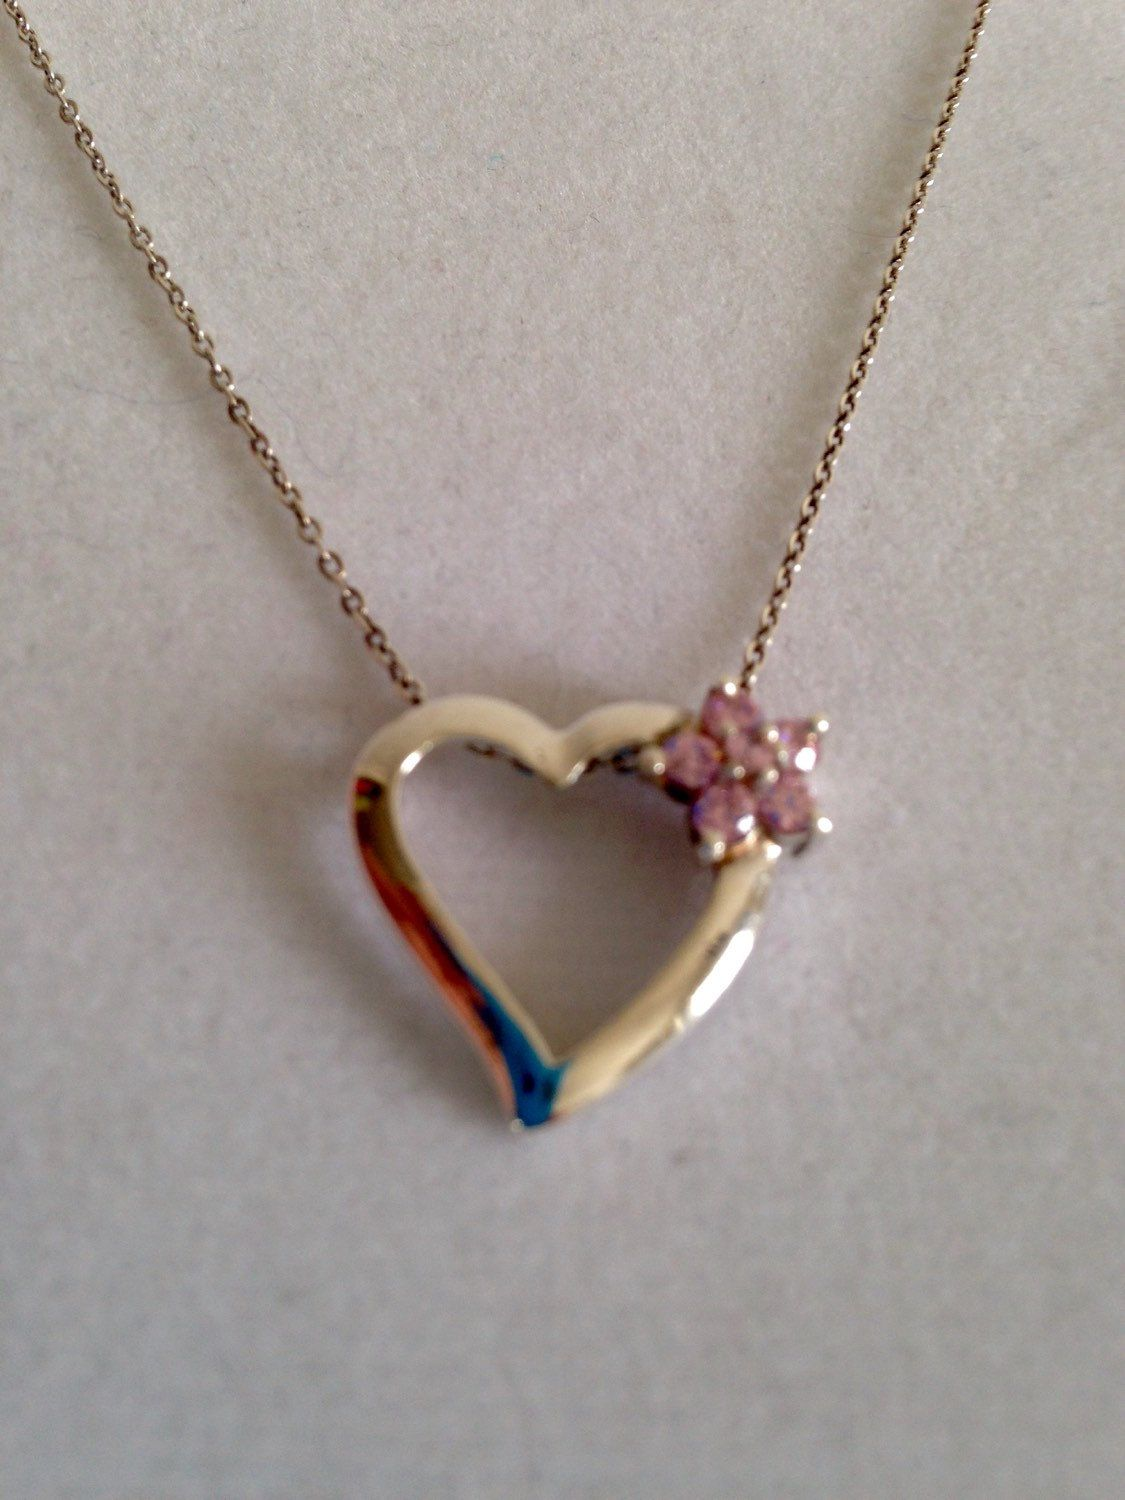 Silver Heart with Pink Flower Necklace by juliesringsandthings on Etsy